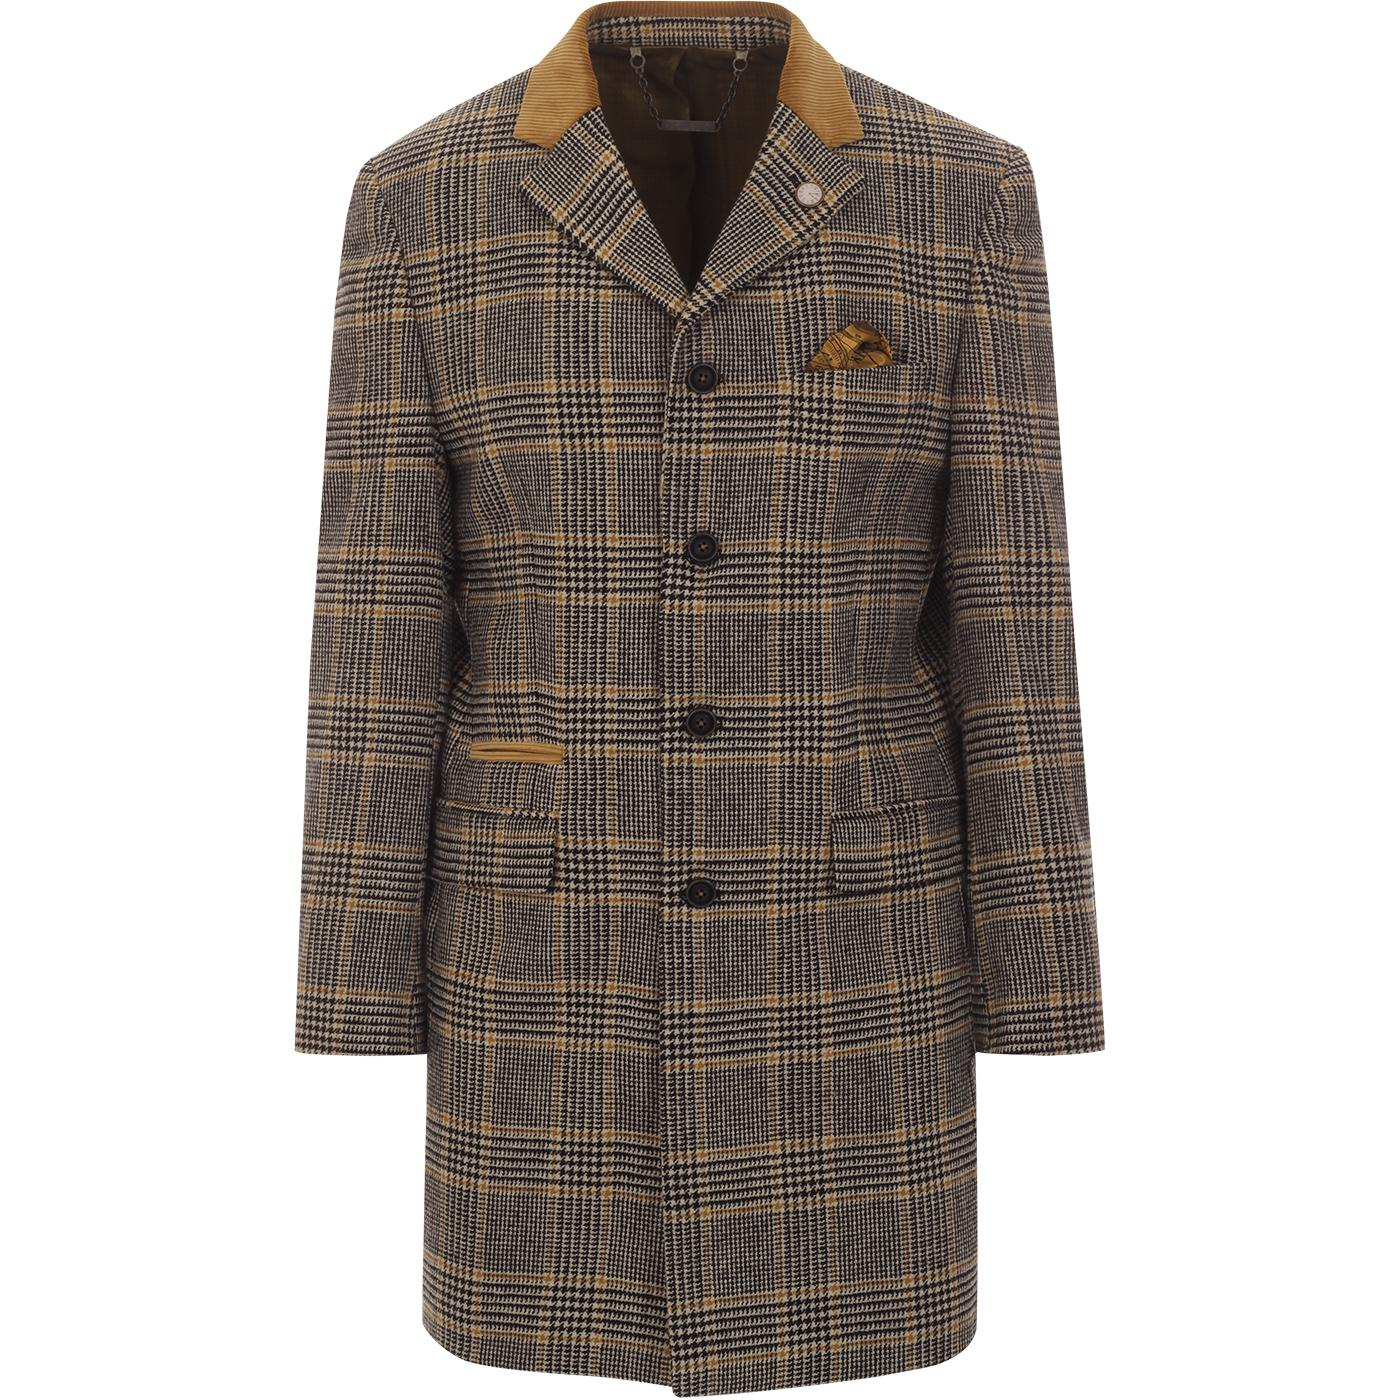 Vinnie GIBSON LONDON Mod Pow Check Dress Jacket C